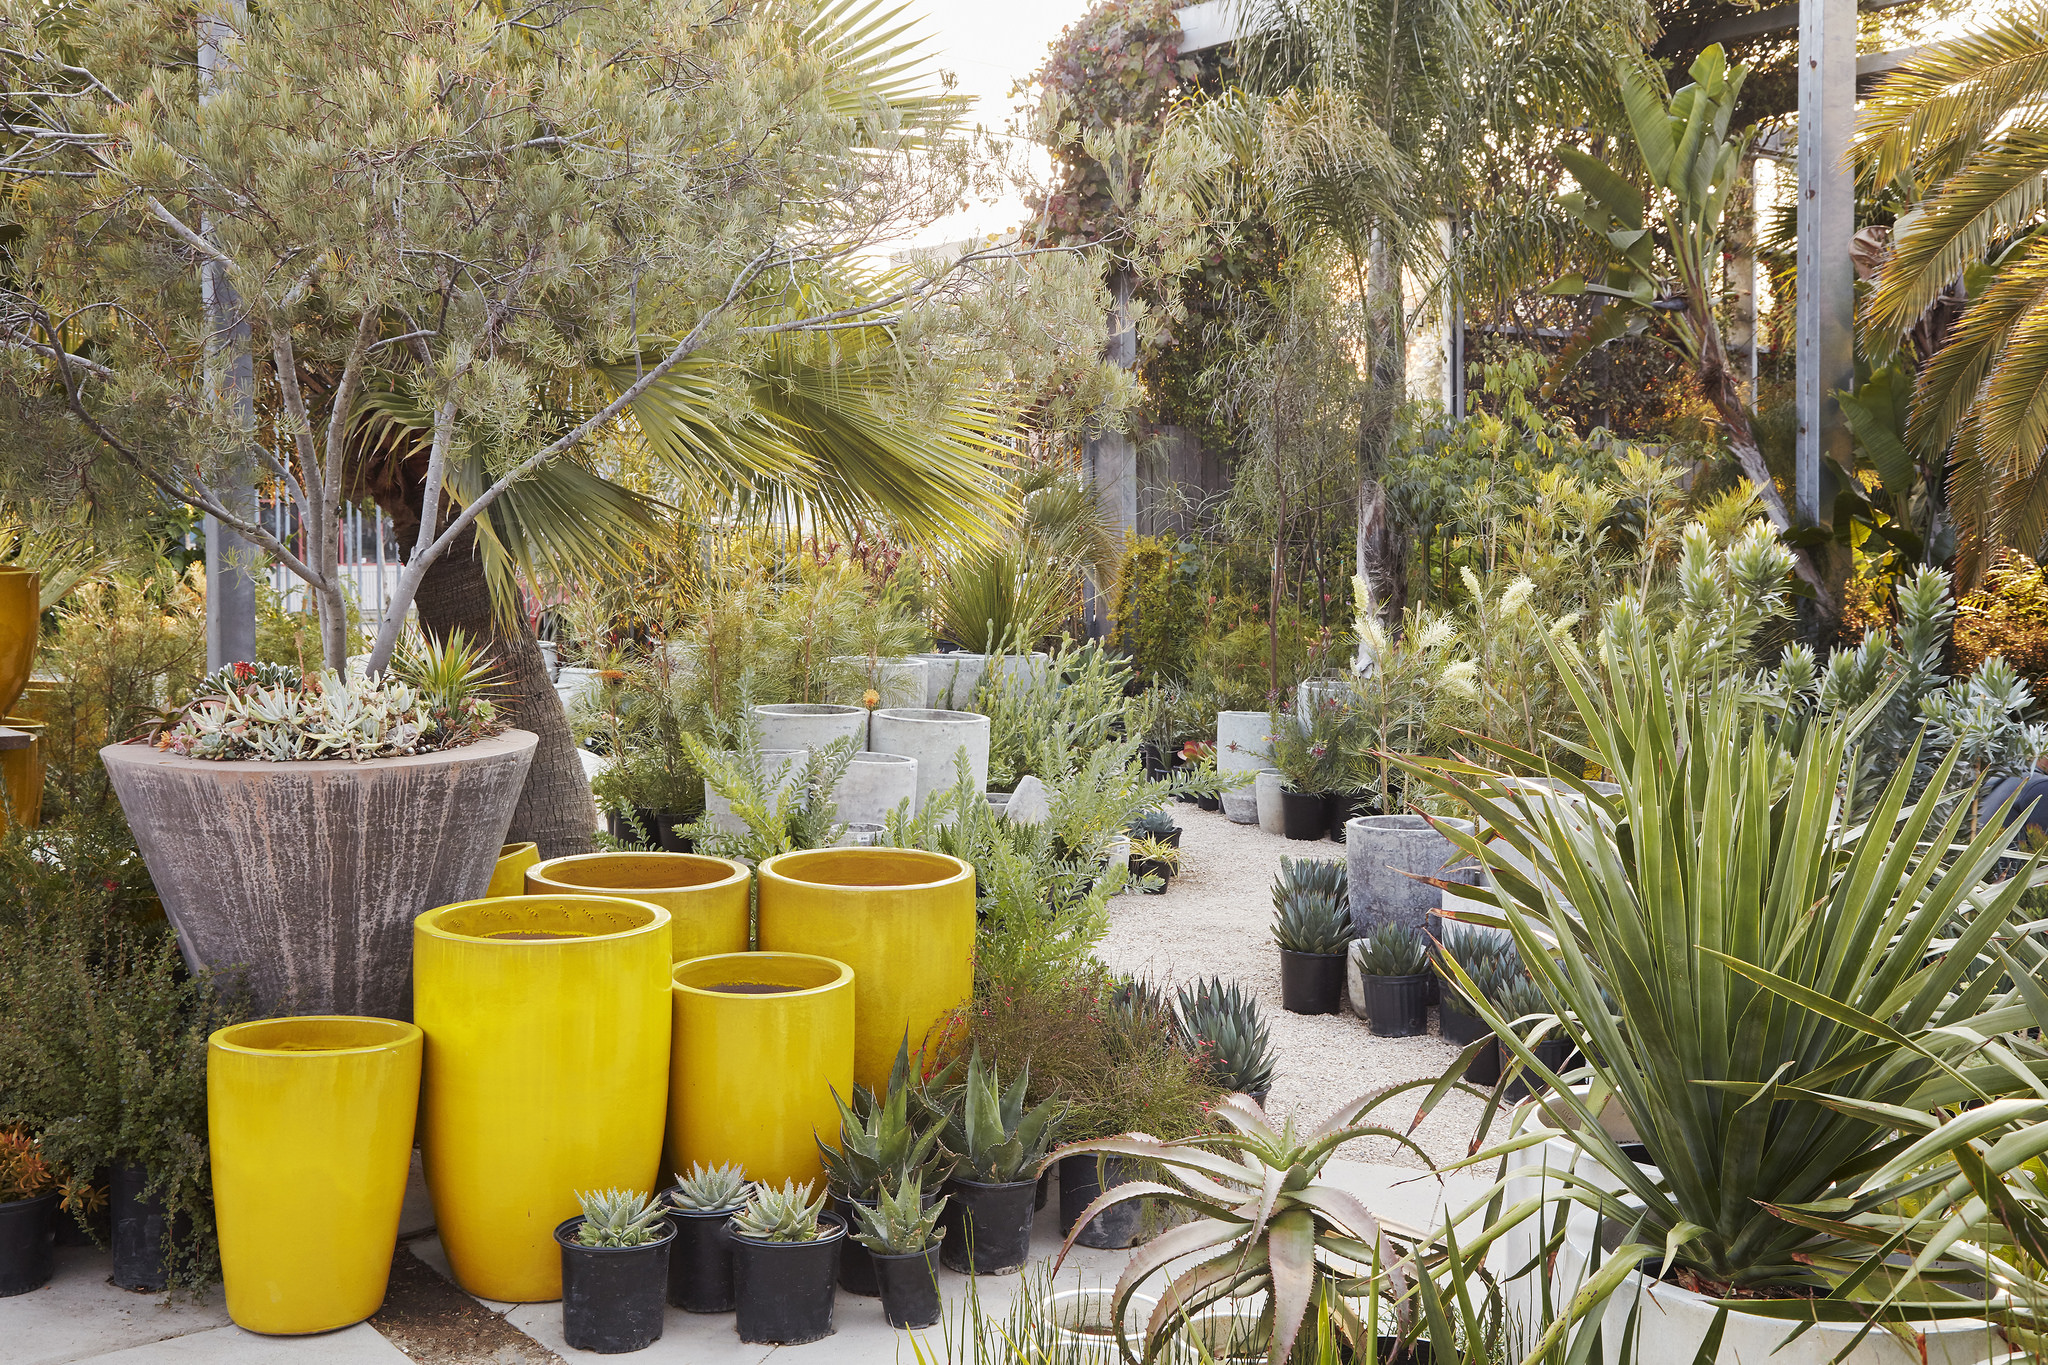 Flora Grubb Gardens Container Pots in Yellow.jpg